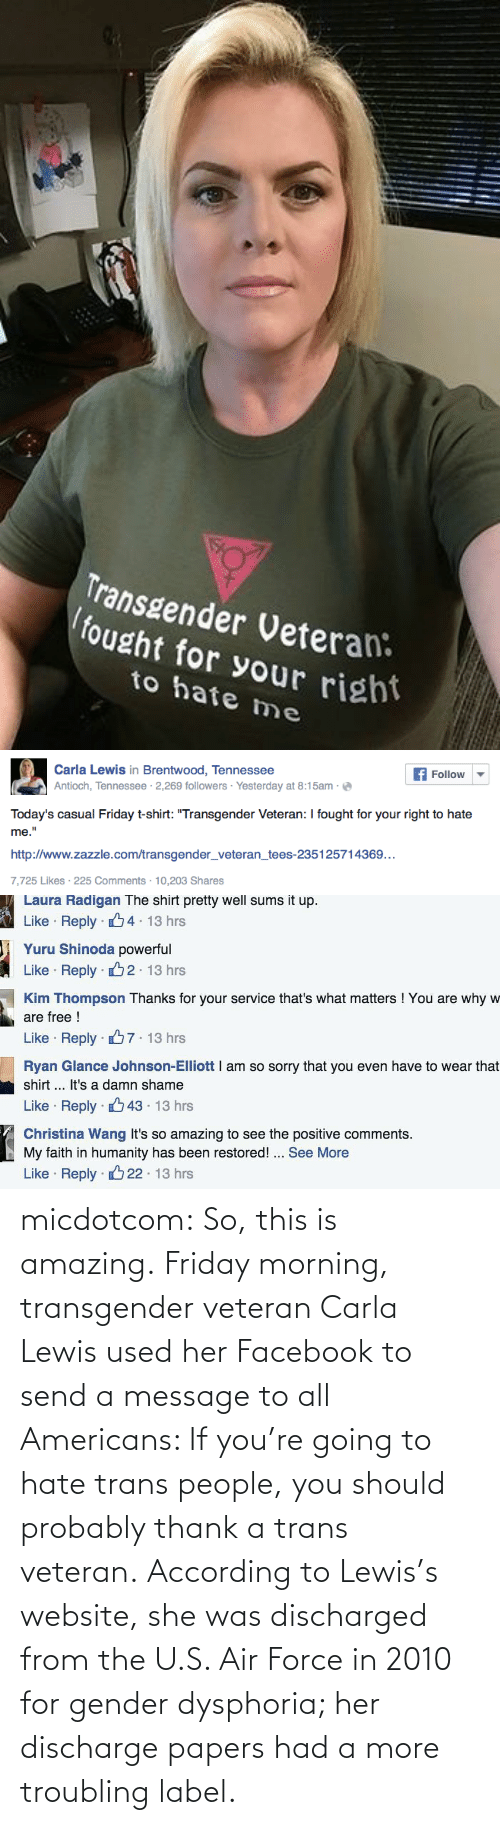 "Facebook, Friday, and Sorry: Transgender Veteran:  fought for your right  to hate me   Carla Lewis in Brentwood, Tennessee  Antioch, Tennessee · 2,269 followers · Yesterday at 8:15am -  Follow  Today's casual Friday t-shirt: ""Transgender Veteran: I fought for your right to hate  me.""  http://www.zazzle.com/transgender_veteran_tees-235125714369...  7,725 Likes · 225 Comments · 10,203 Shares   Laura Radigan The shirt pretty well sums it up.  Like · Reply · 4 13 hrs  Yuru Shinoda powerful  Like · Reply · B2  13 hrs  Kim Thompson Thanks for your service that's what matters ! You are why w  are free !  Like · Reply · 67. 13 hrs  Ryan Glance Johnson-Elliott I am so sorry that you even have to wear that  shirt ... It's a damn shame  Like · Reply · 43 · 13 hrs  Christina Wang It's so amazing to see the positive comments.  My faith in humanity has been restored! .. See More  22 · 13 hrs  Like · Reply · micdotcom:  So, this is amazing. Friday morning, transgender veteran Carla Lewis used her Facebook to send a message to all Americans: If you're going to hate trans people, you should probably thank a trans veteran. According to Lewis's website, she was discharged from the U.S. Air Force in 2010 for gender dysphoria; her discharge papers had a more troubling label."